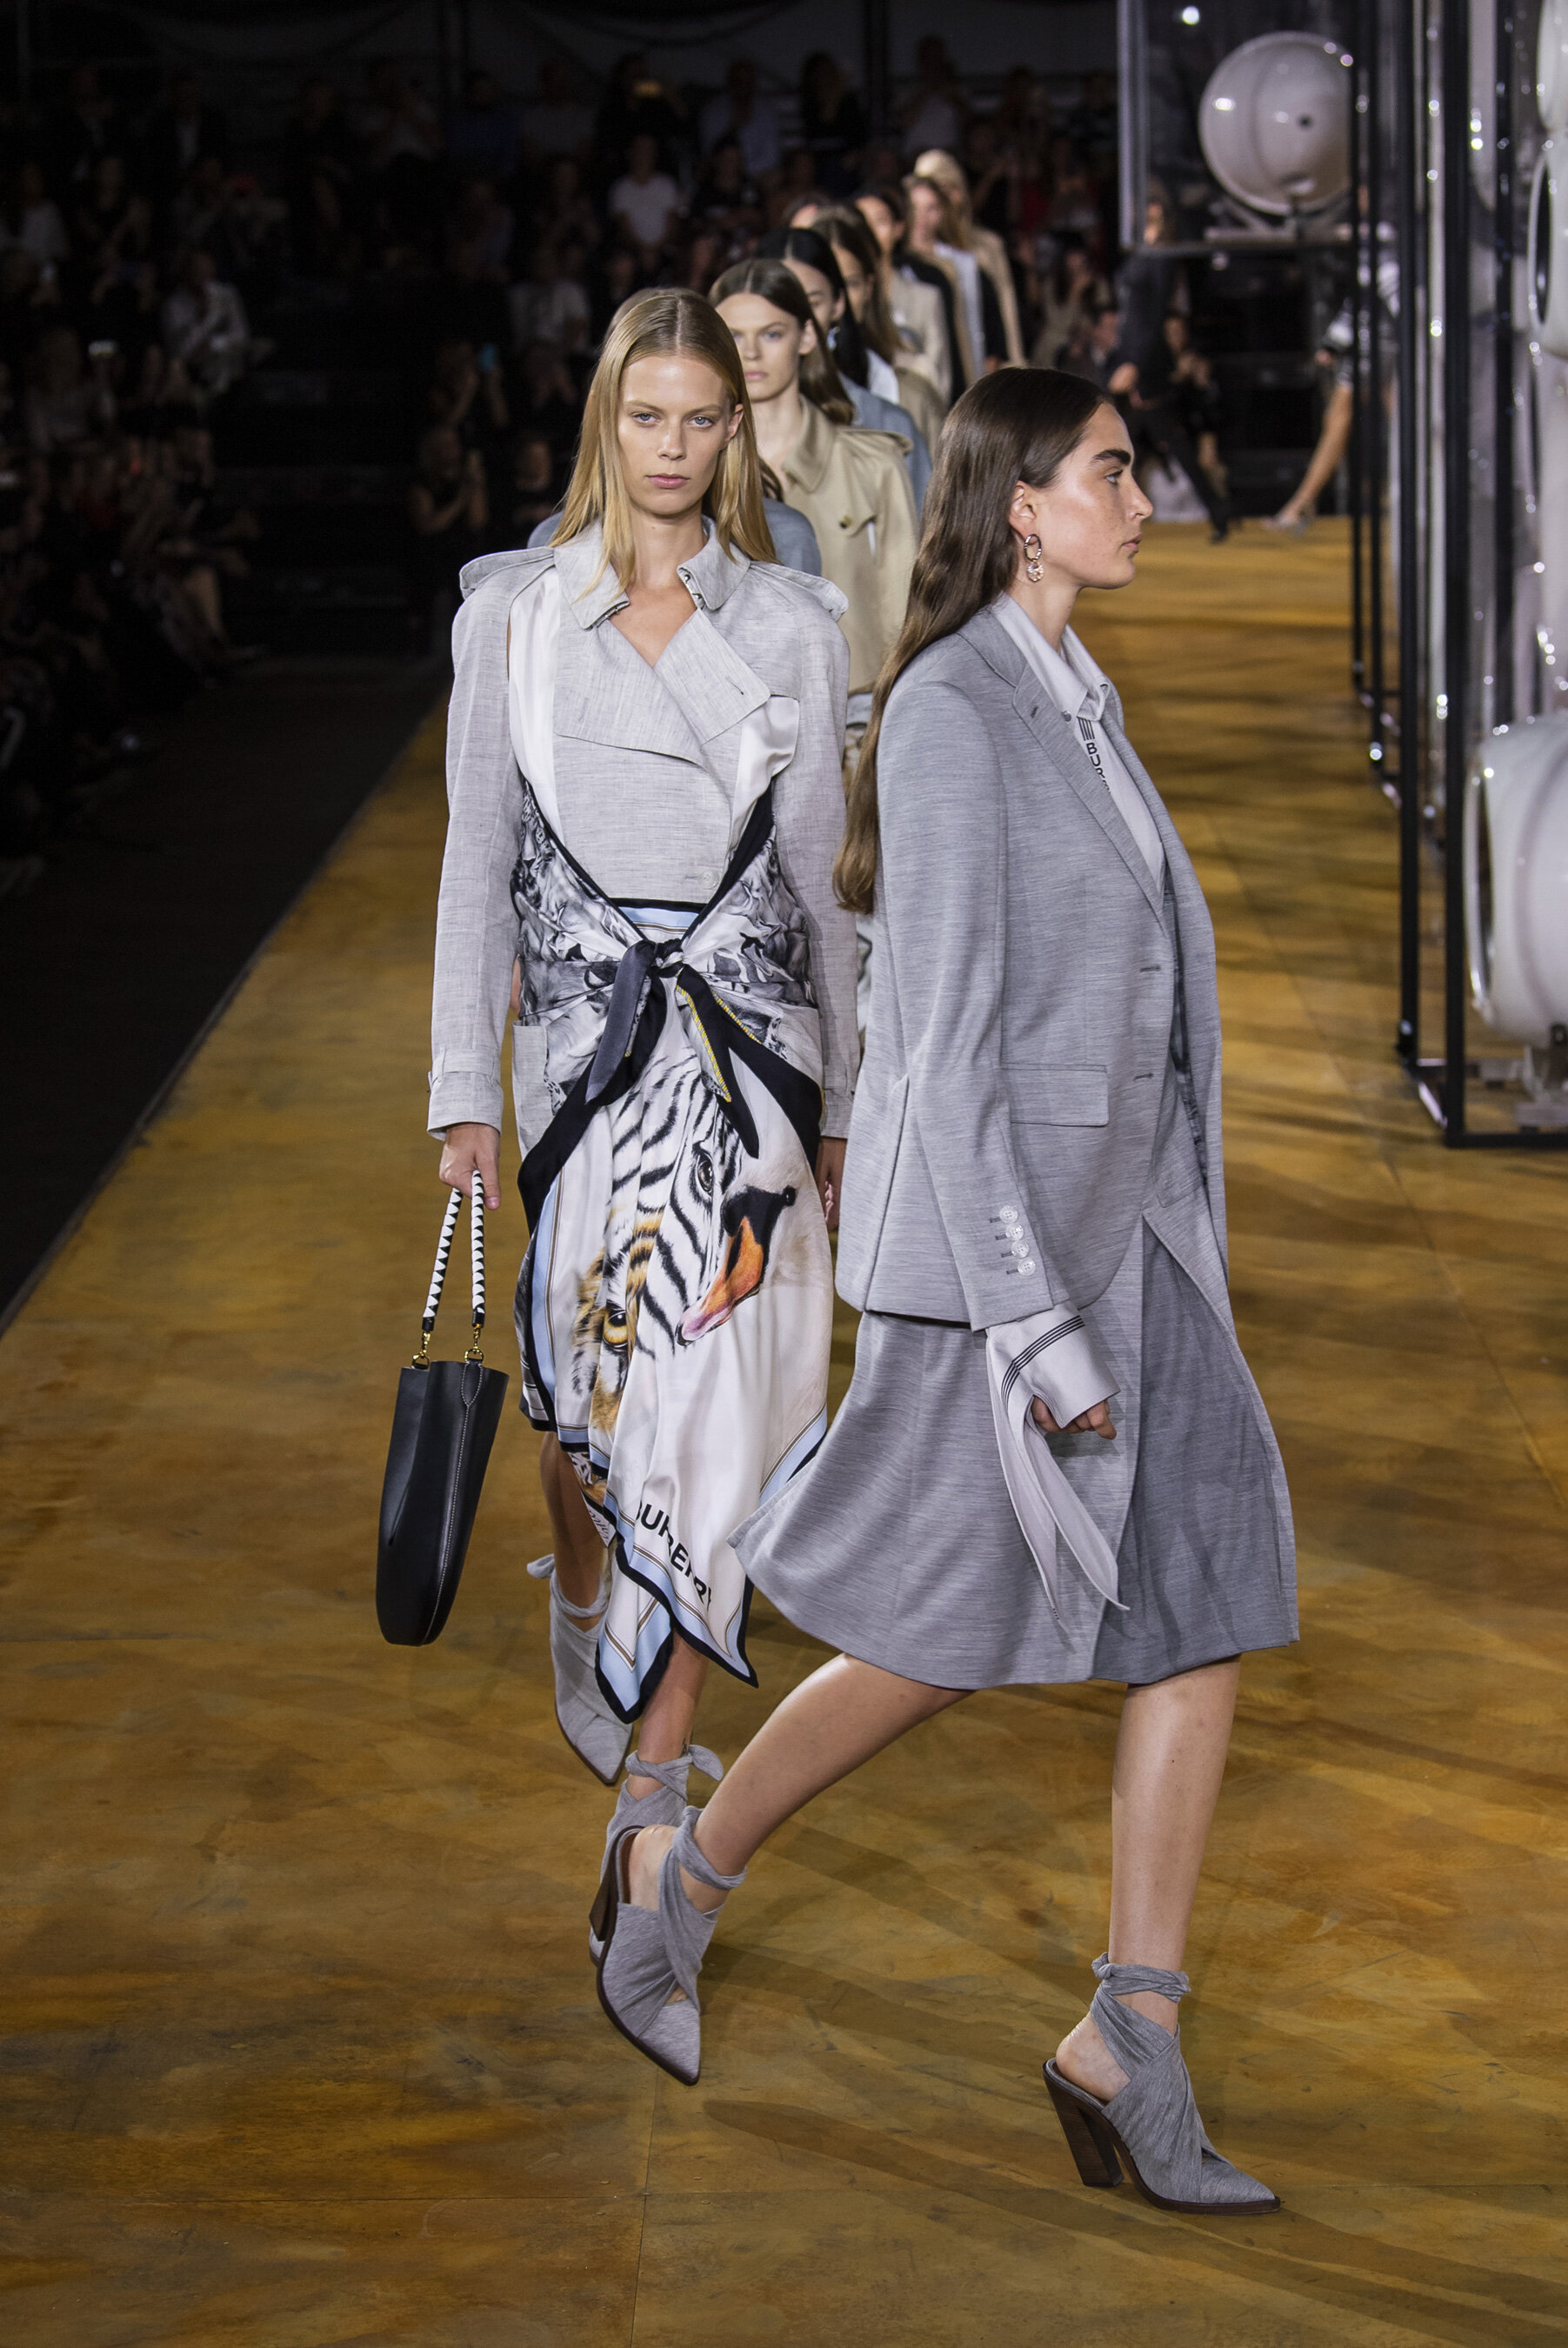 Burberry's London Fashion Week show this season demonstrated how the brand is subtly evolving (Photo: theimpression.com)